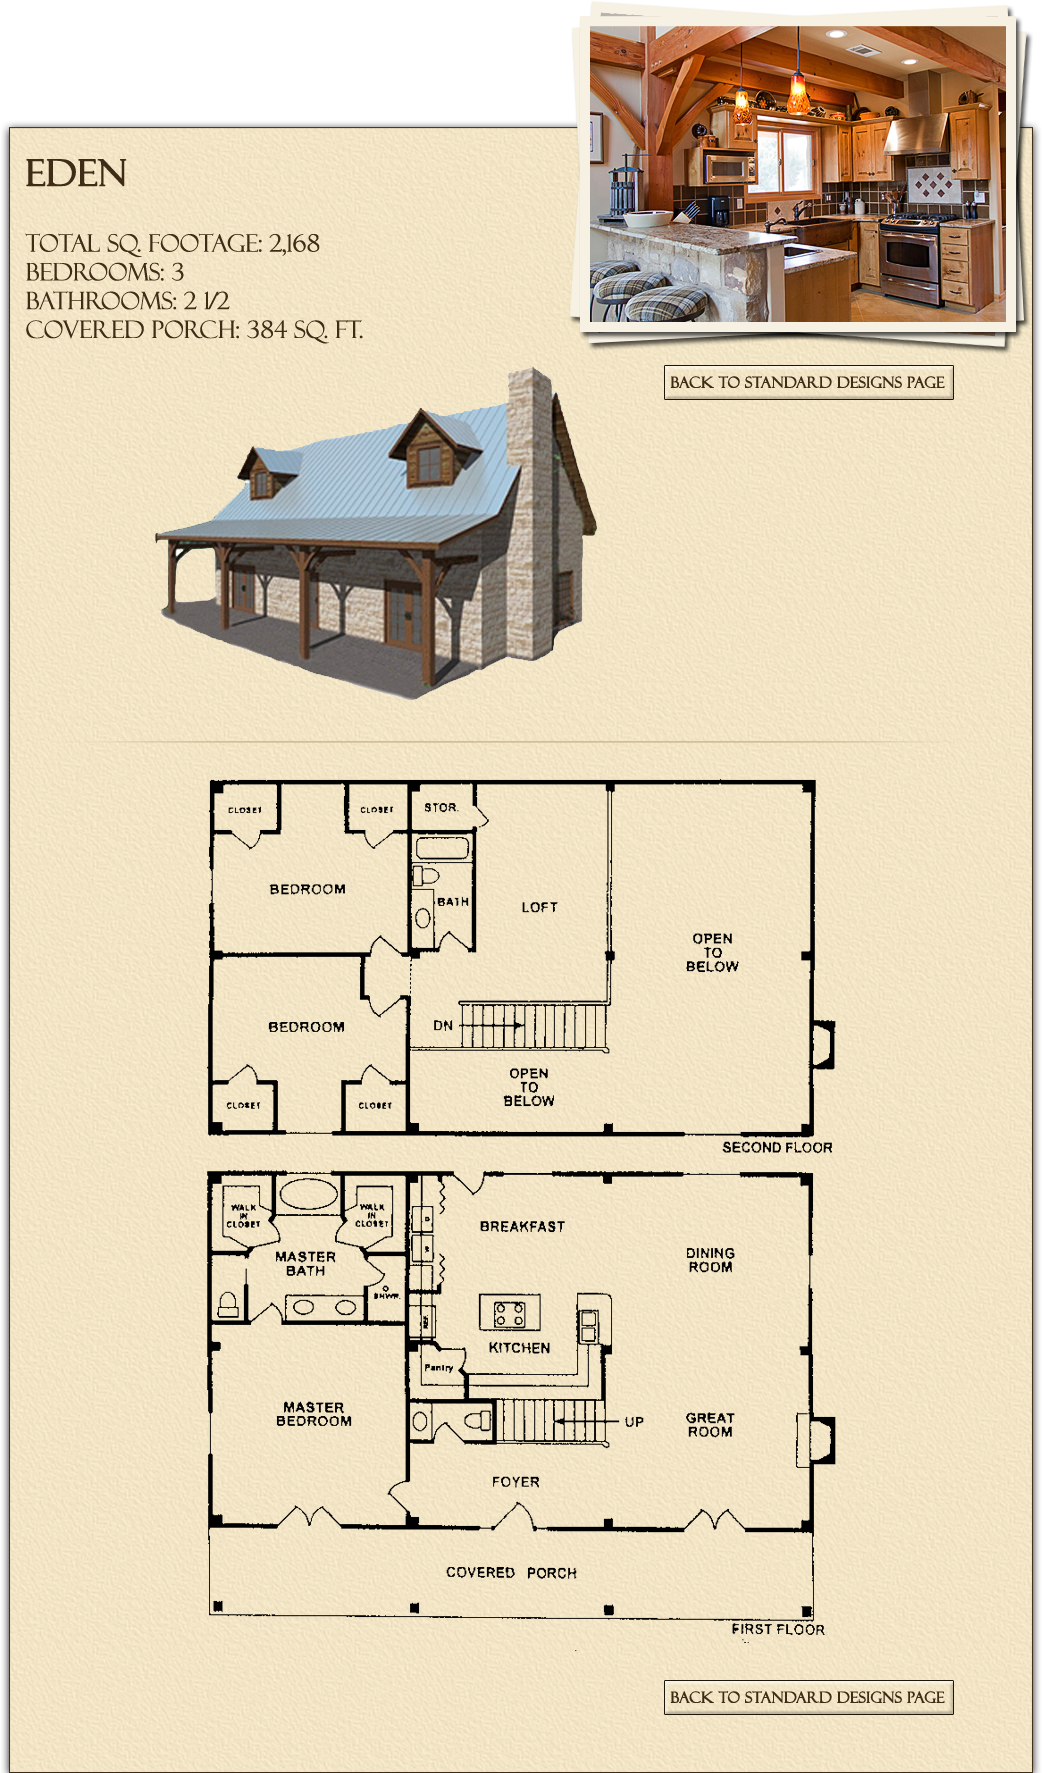 i u0027d so have to change the 1st floor layout more open from kitchen